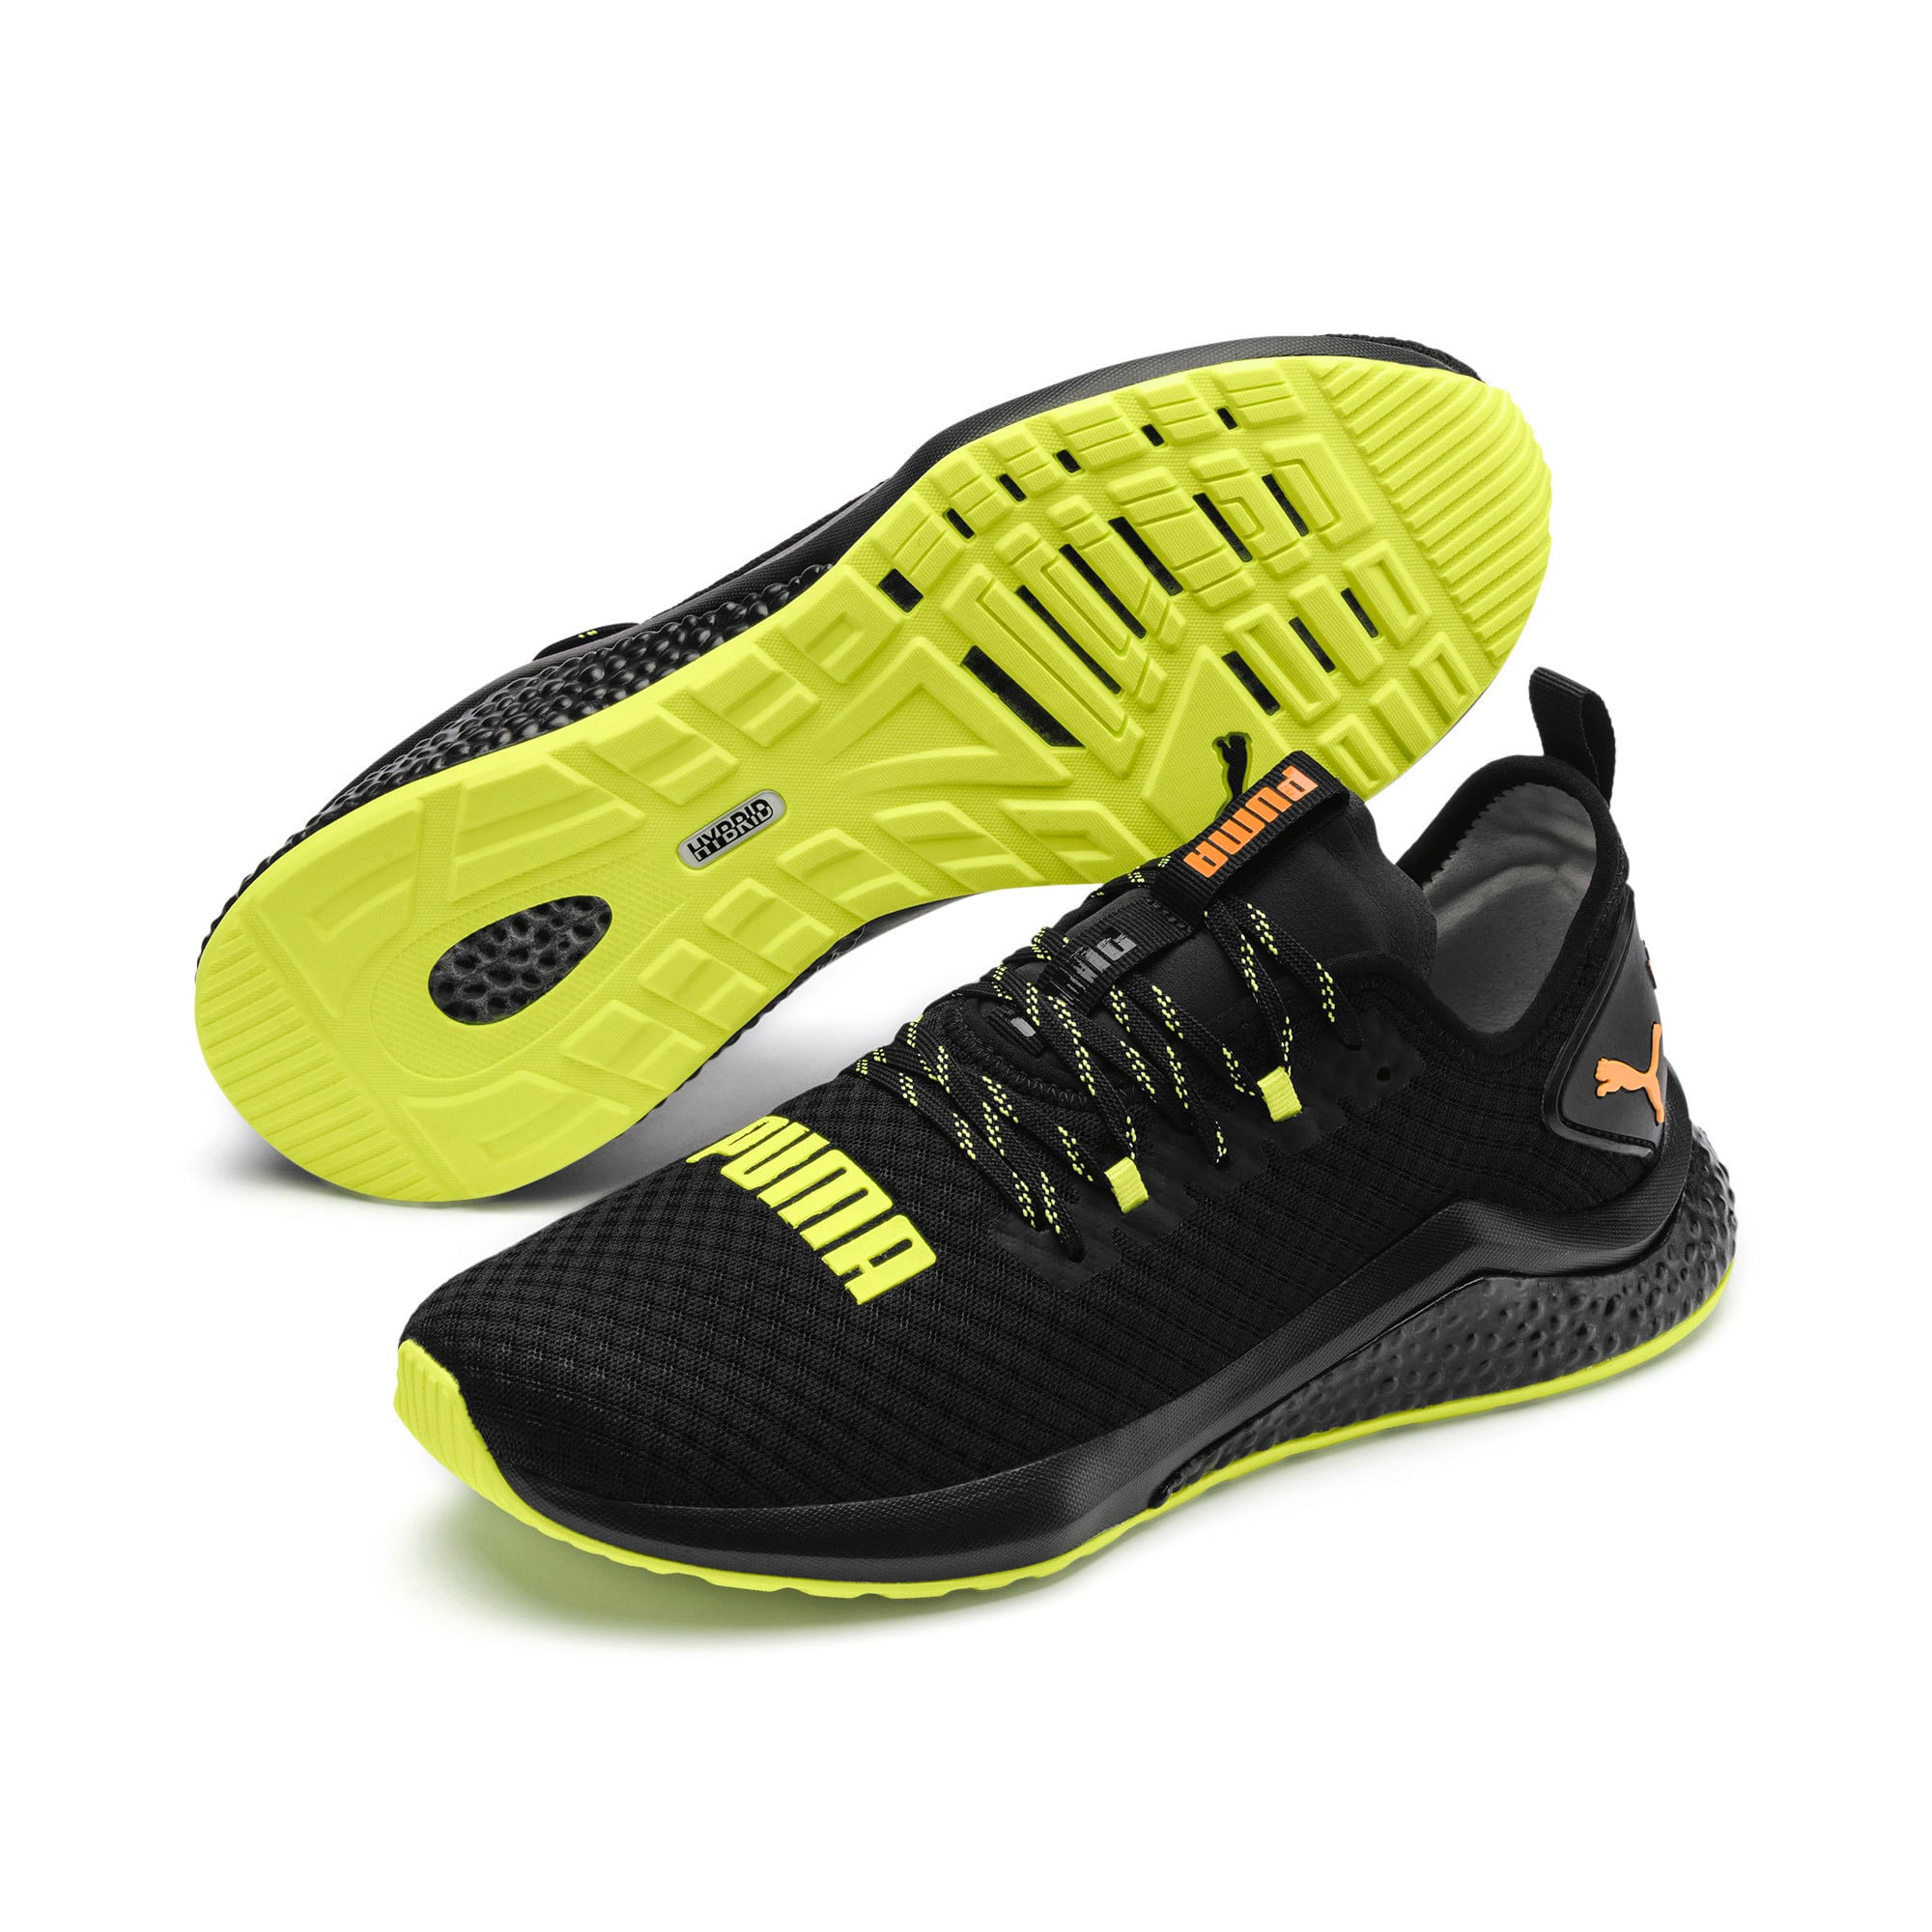 Thumbnail 3 of HYBRID NX Daylight Men's Trainers, Black-FizzyYellow-OrangePop, medium